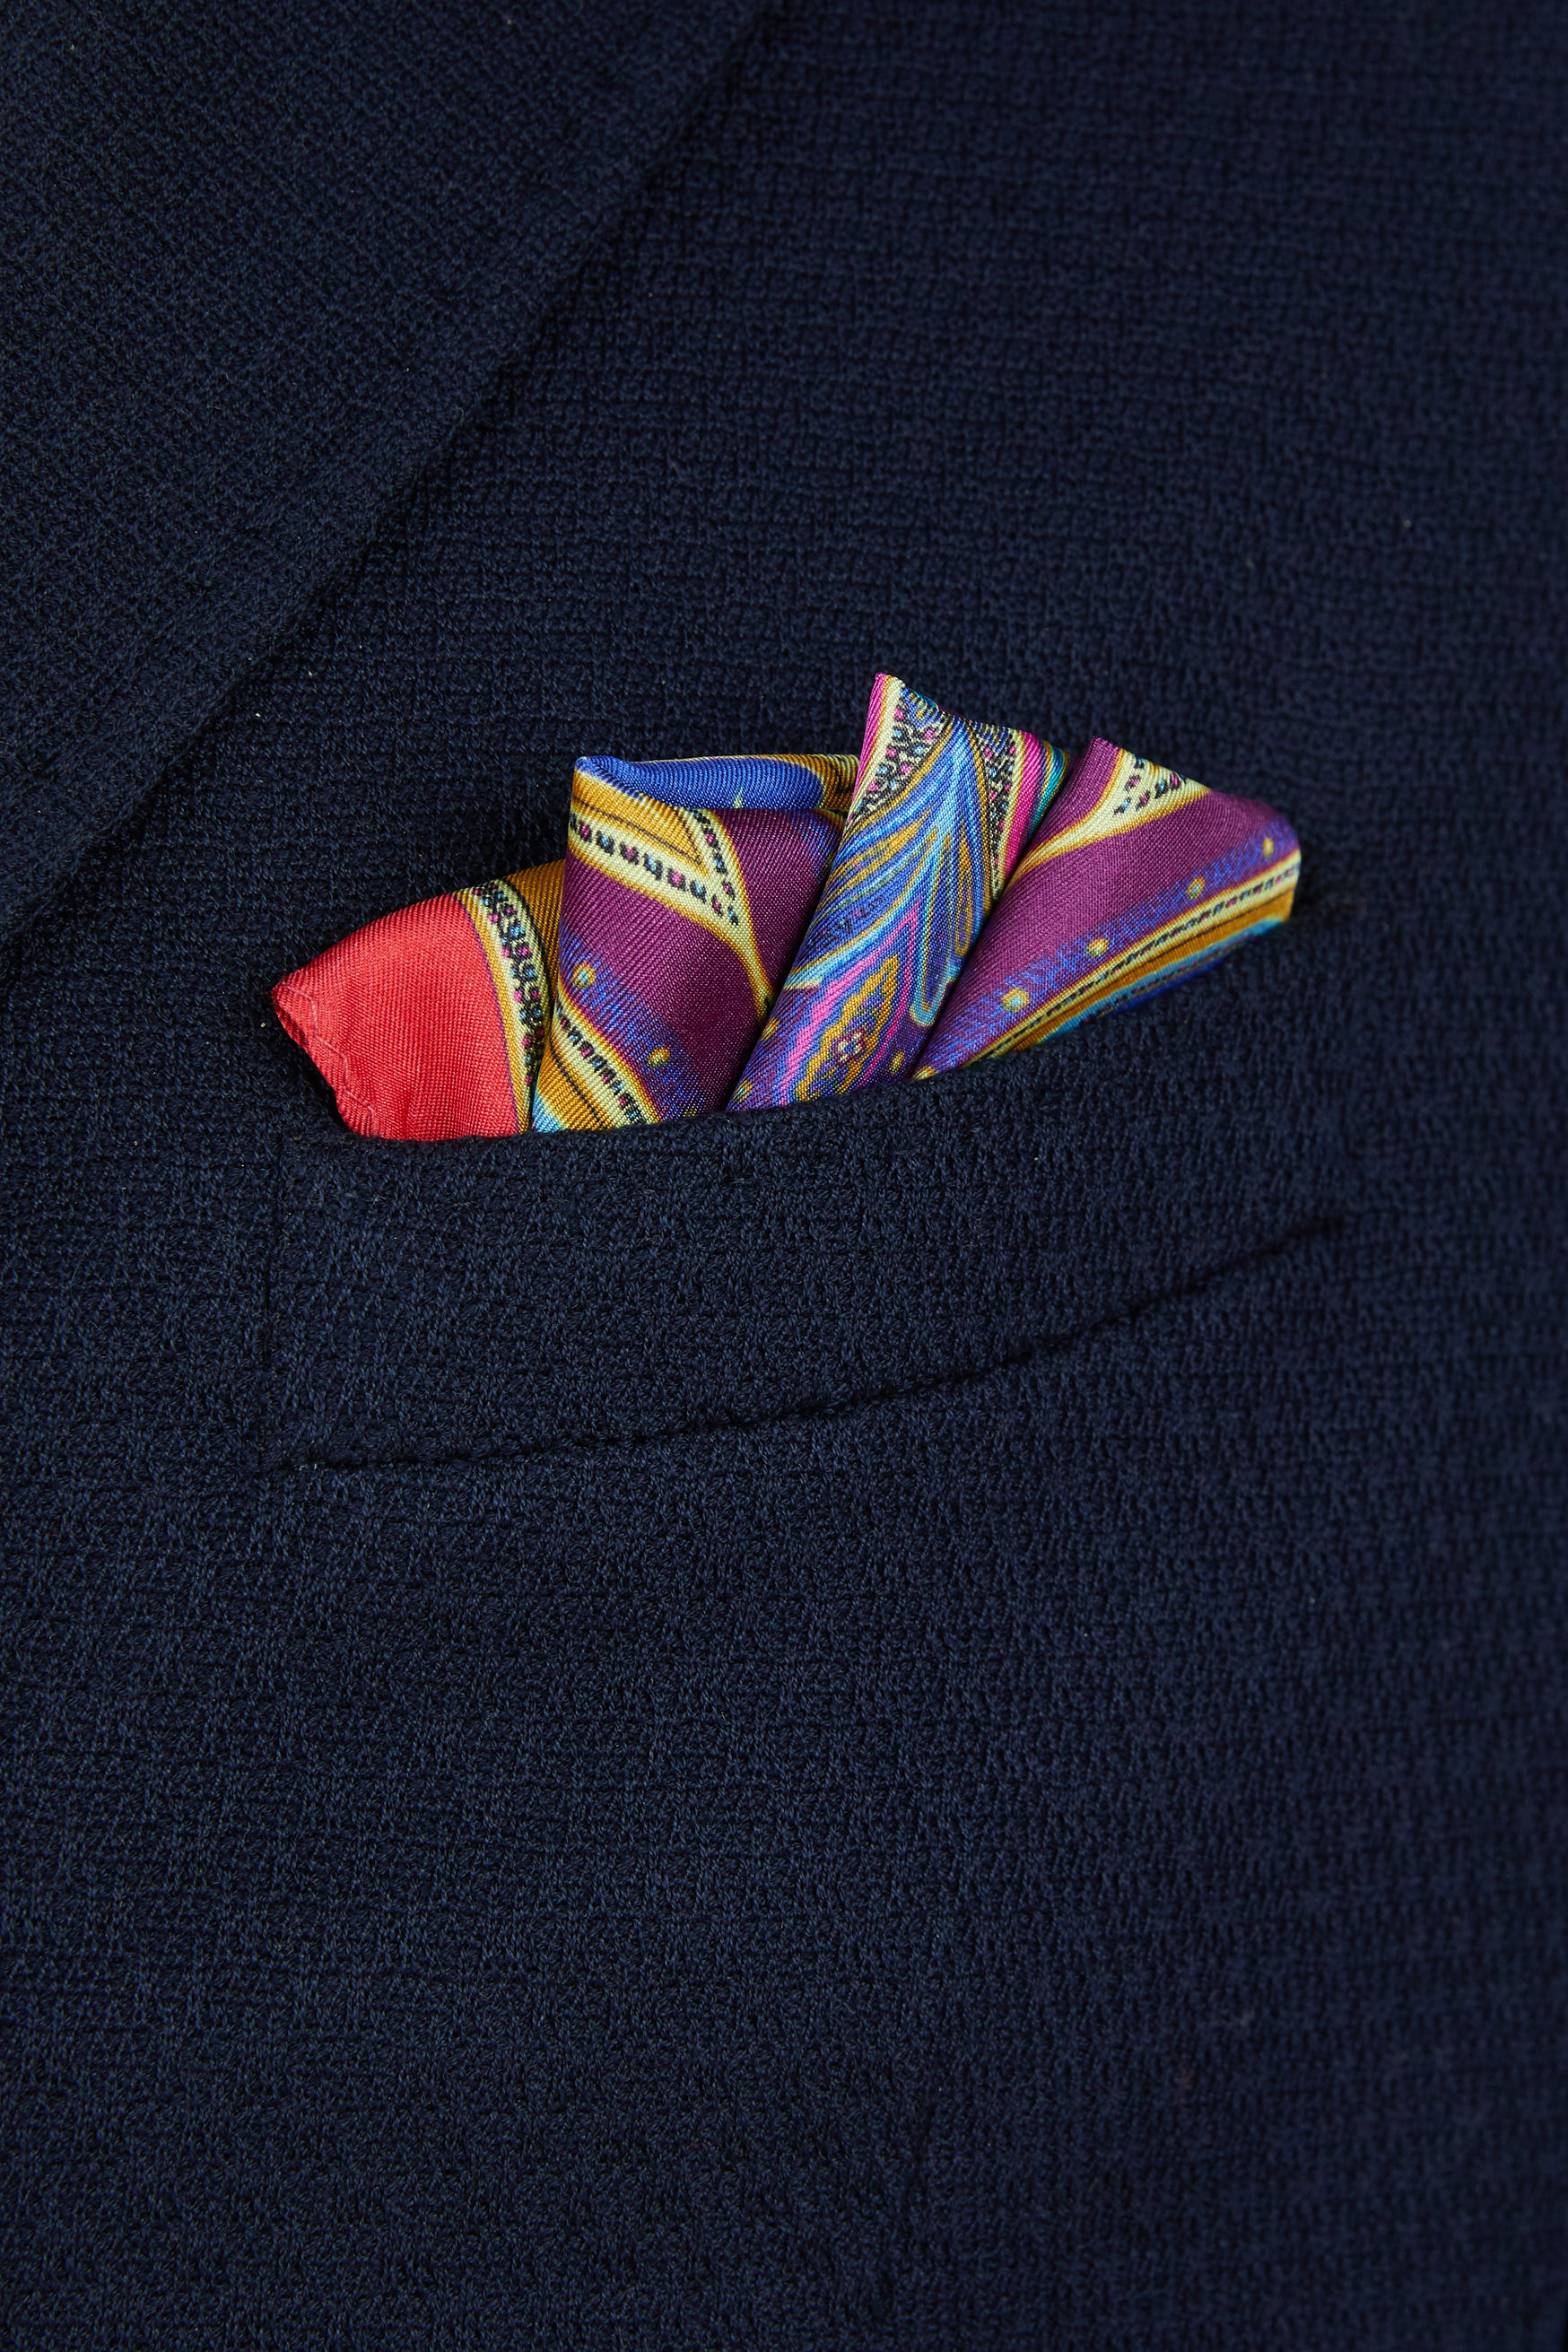 DUCK PRINT POCKET SQUARE